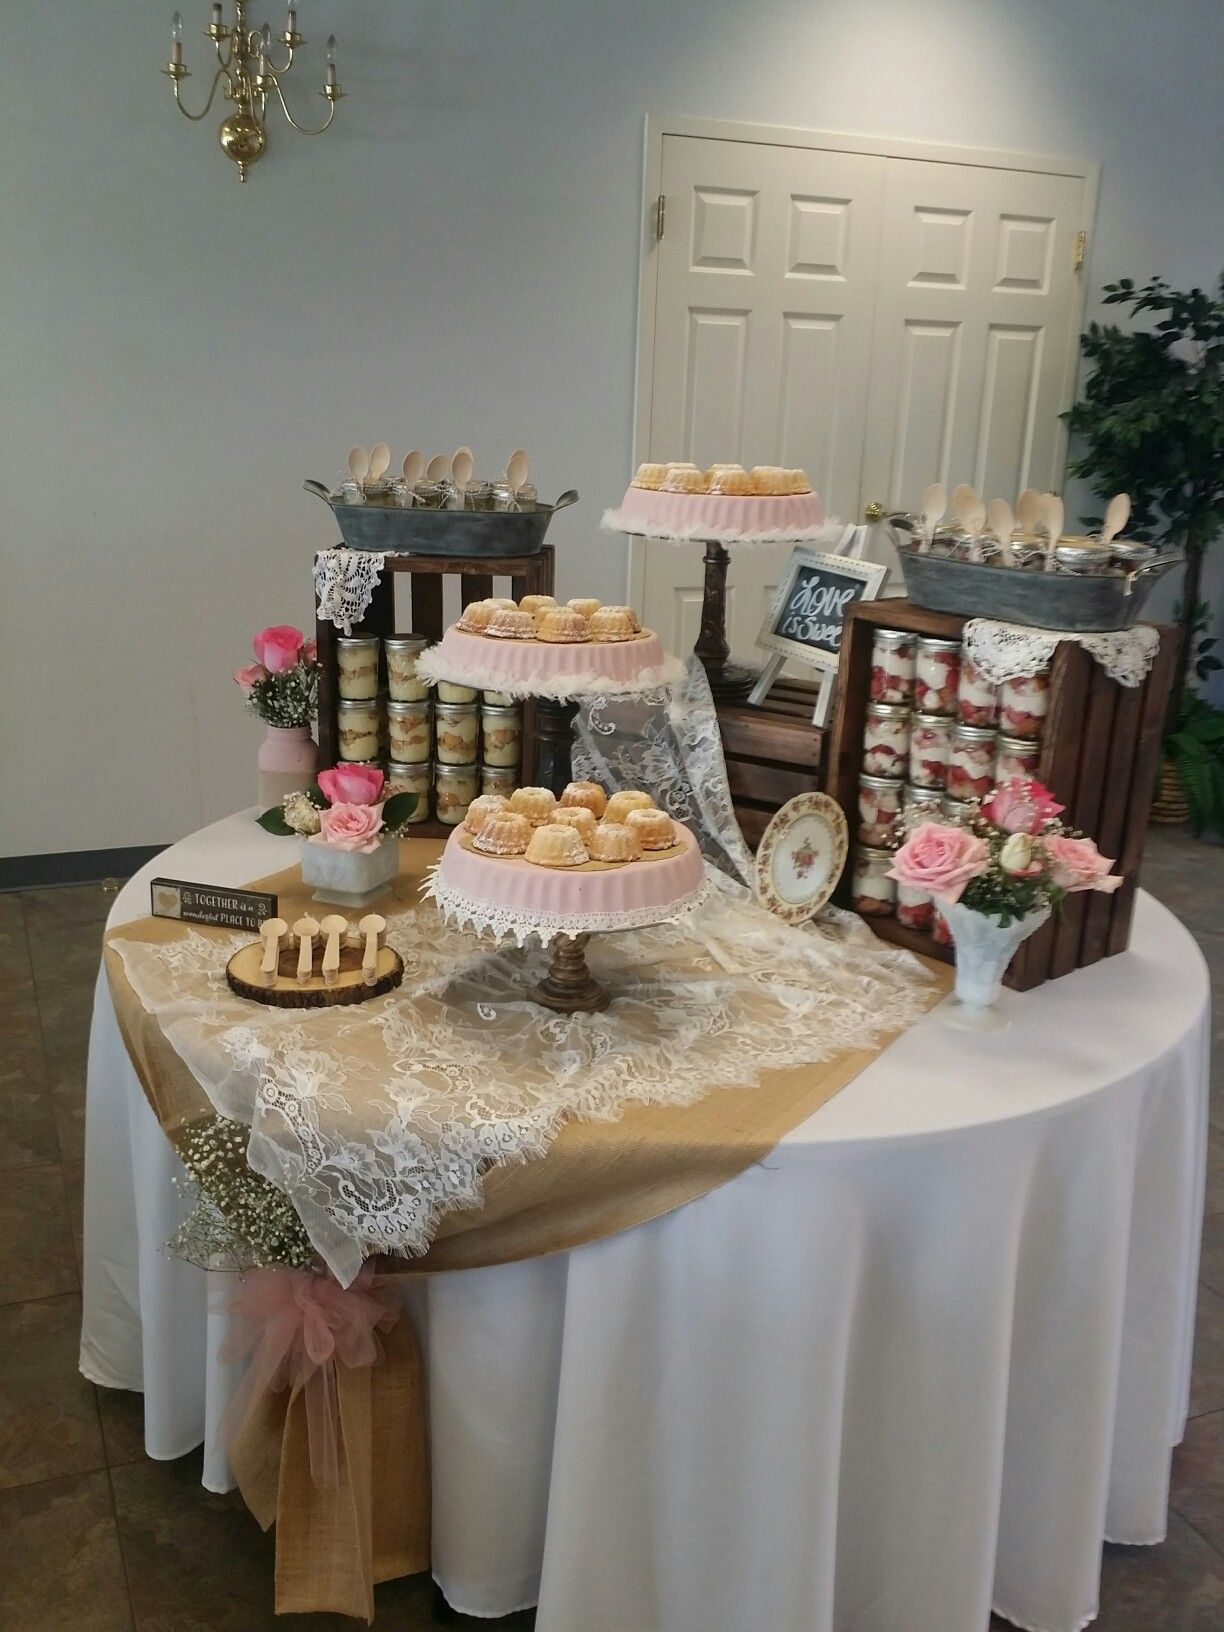 Attrayant Dessert Table For Rehearsal Dinner, Combined All The Wonderful Ideas From  Pinterest Posts. Thanks